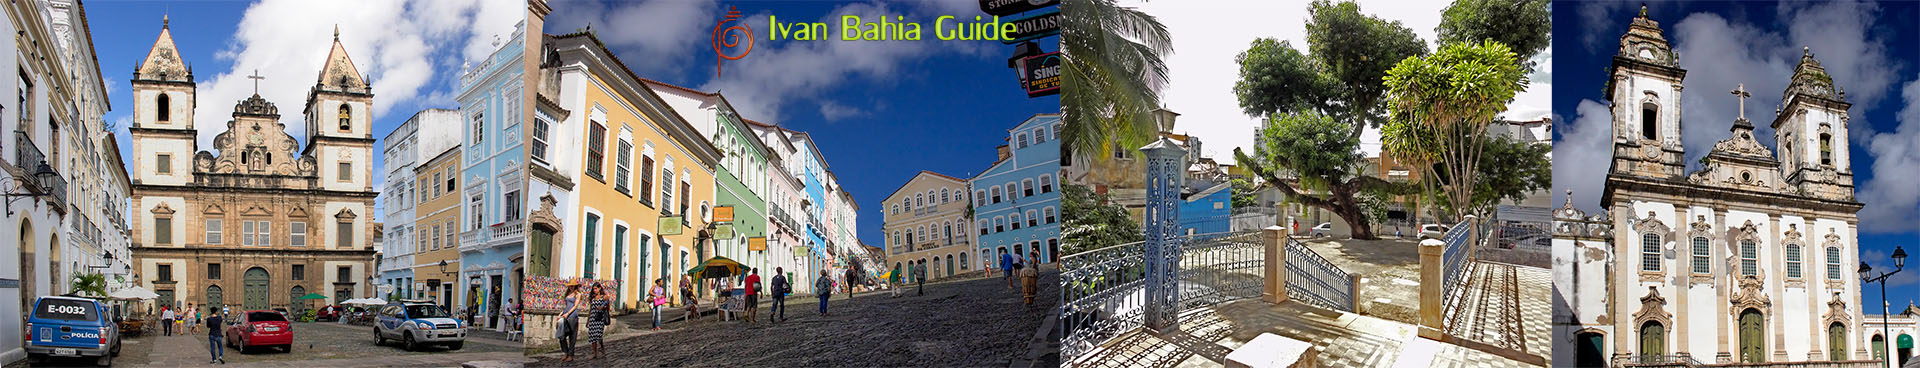 Ivan Bahia Guide, visit to colonial city Cachoeira in the Recôncavo Baiano